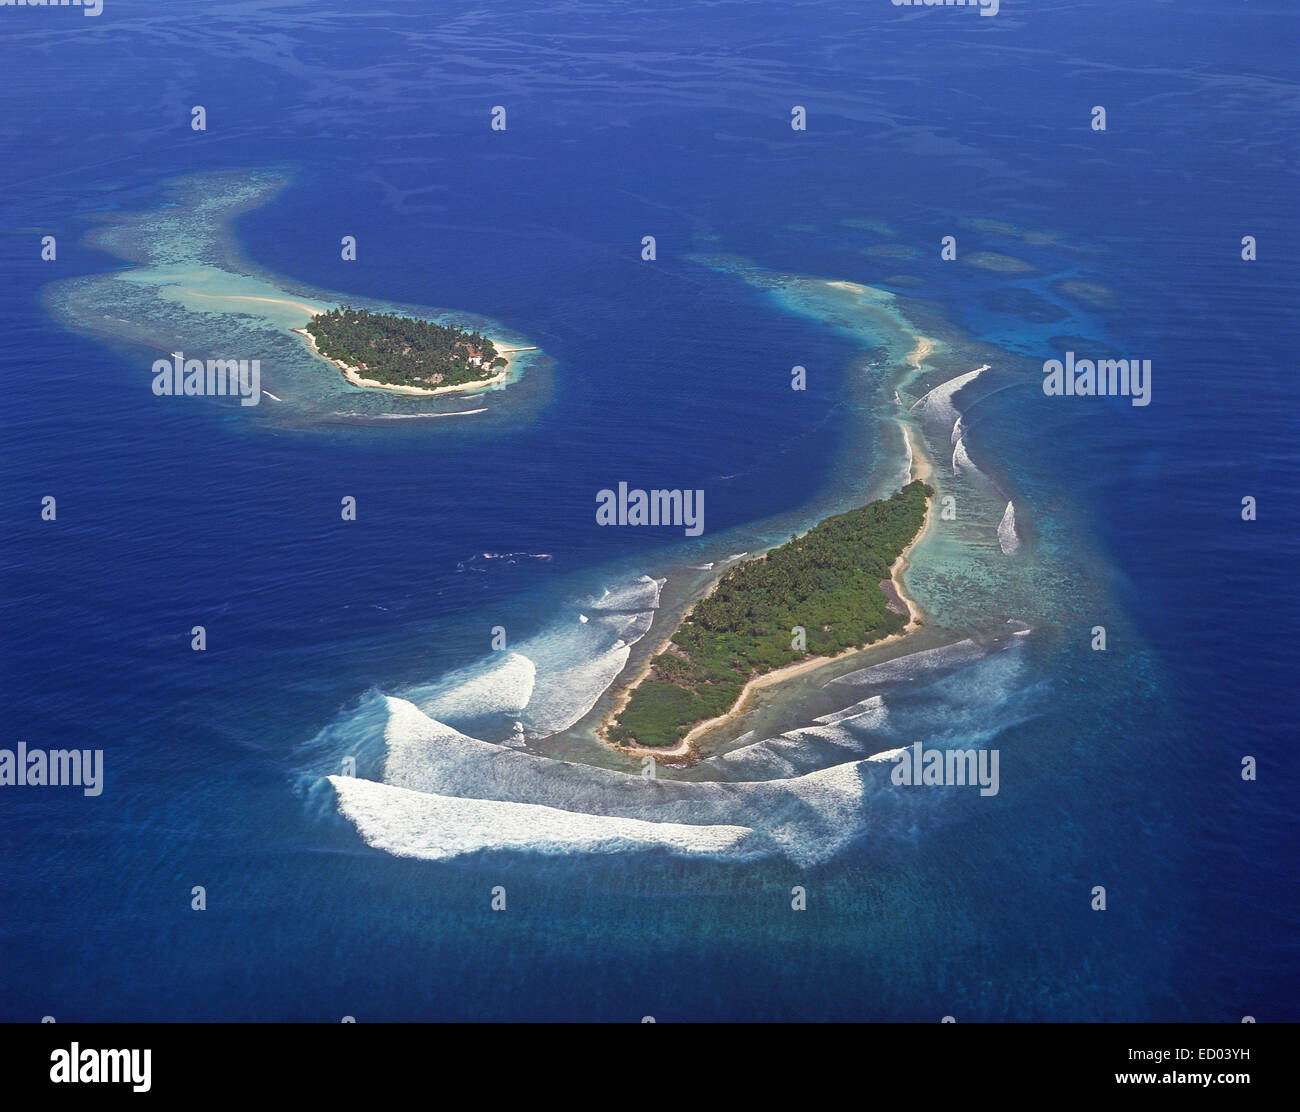 Aerial view of Islands, Kaafu Atoll, Republic of Maldives - Stock Image